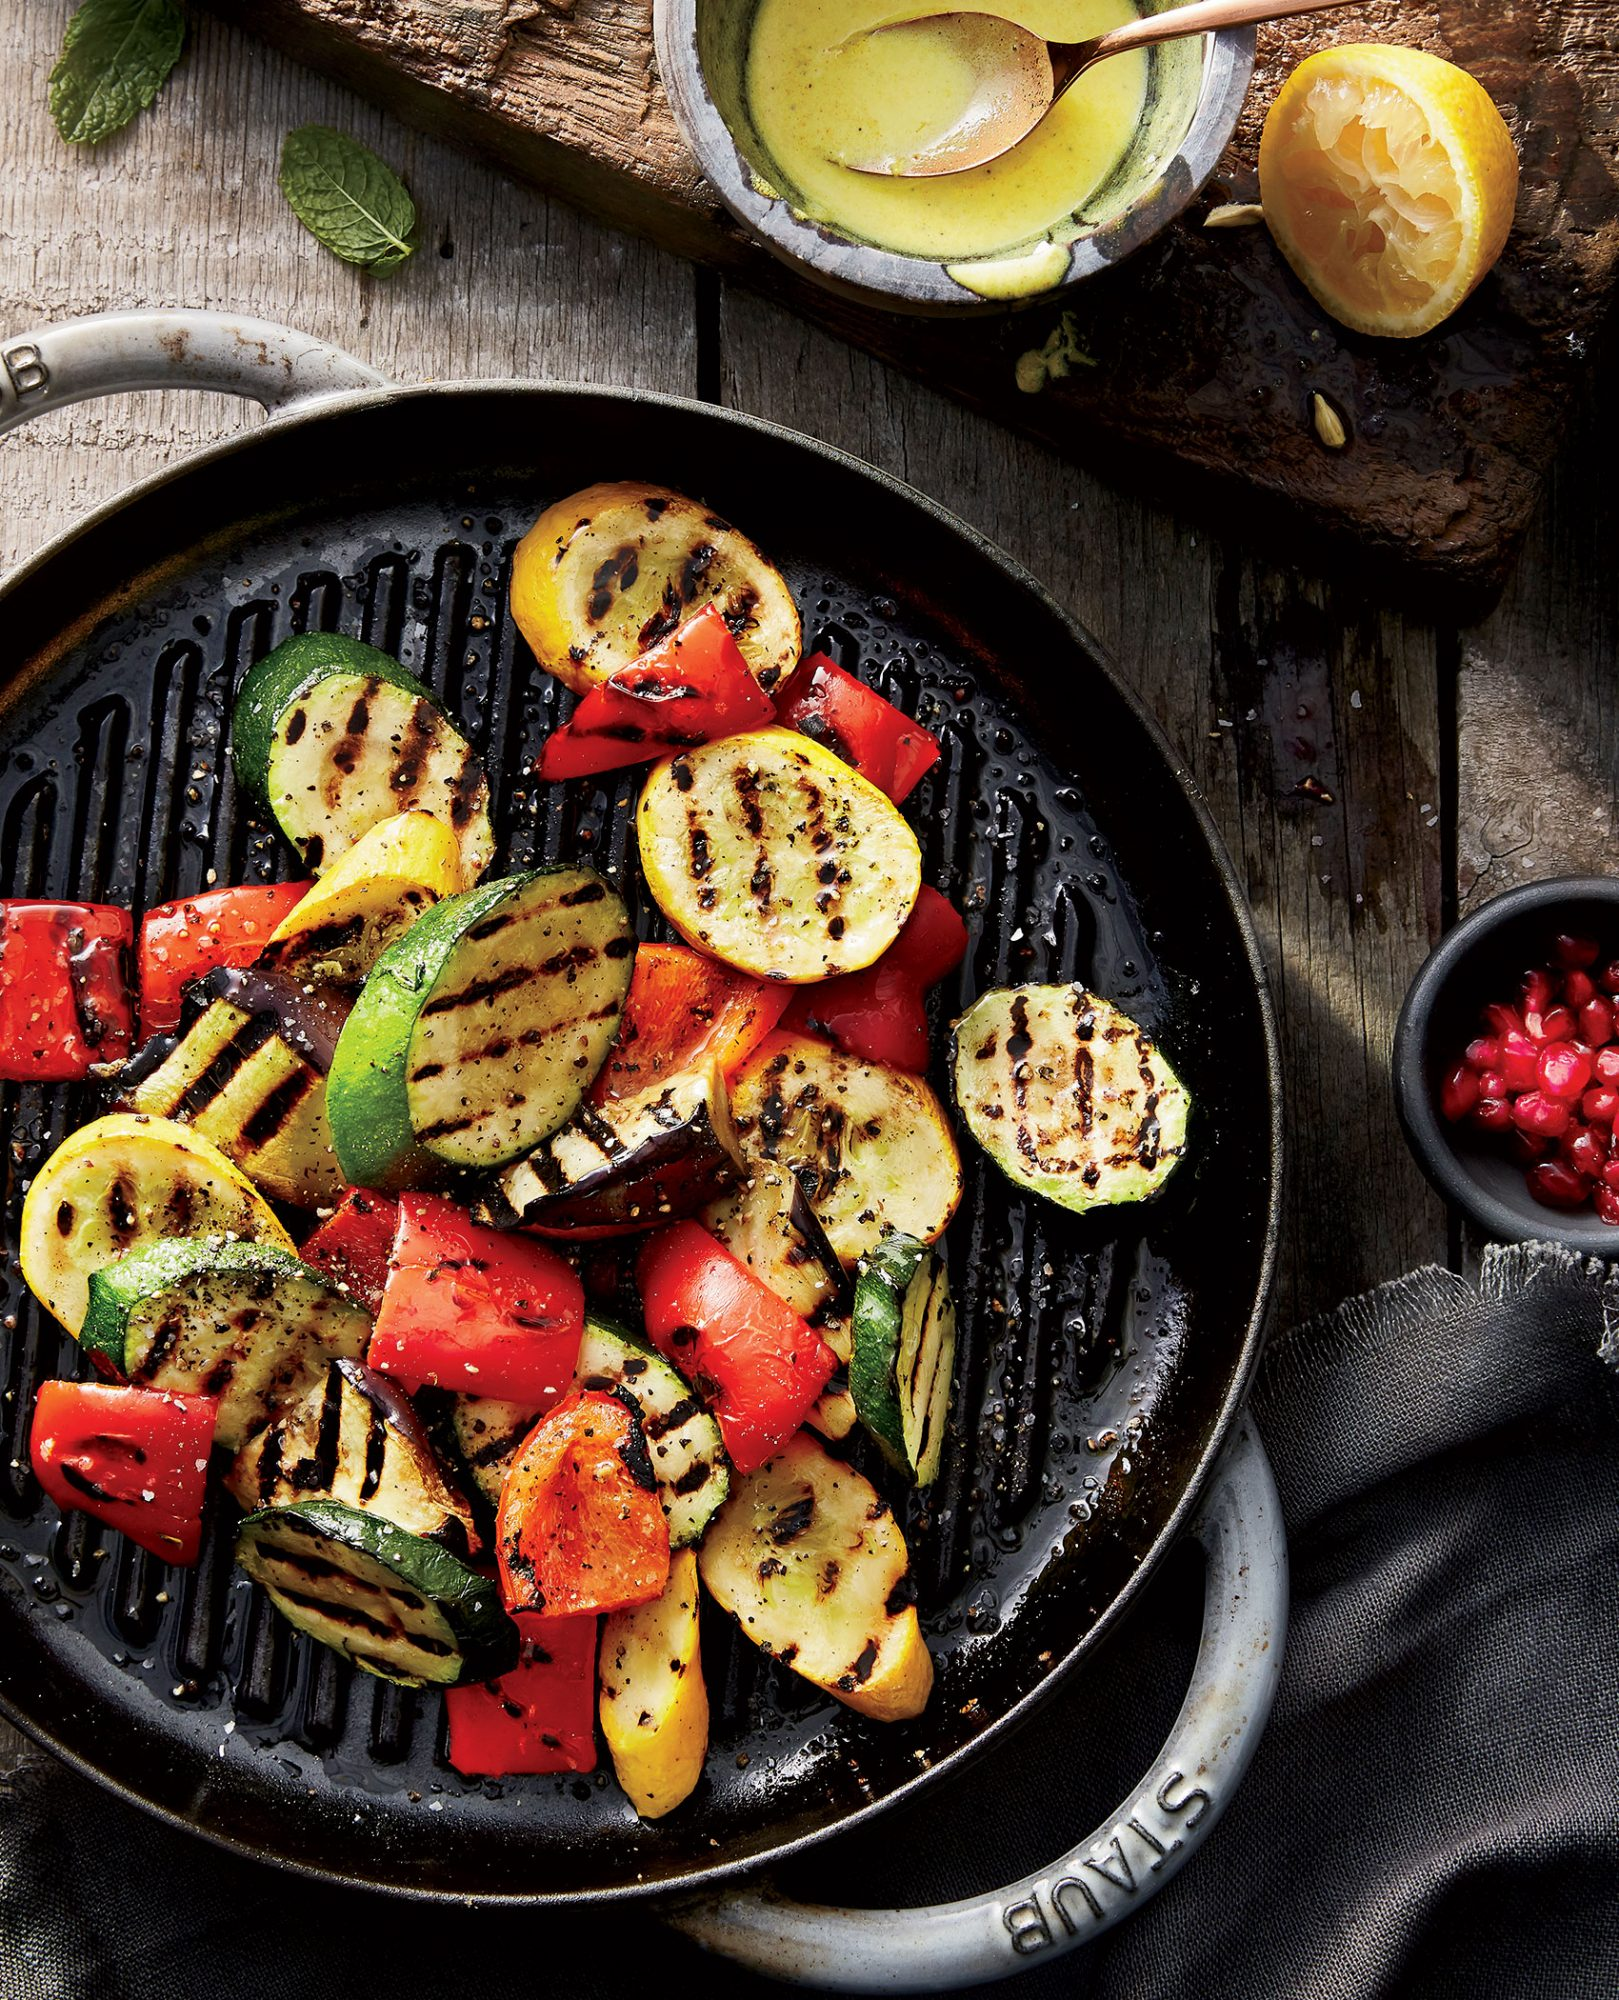 grilled-vegetables-creamy-turmeric-sauce